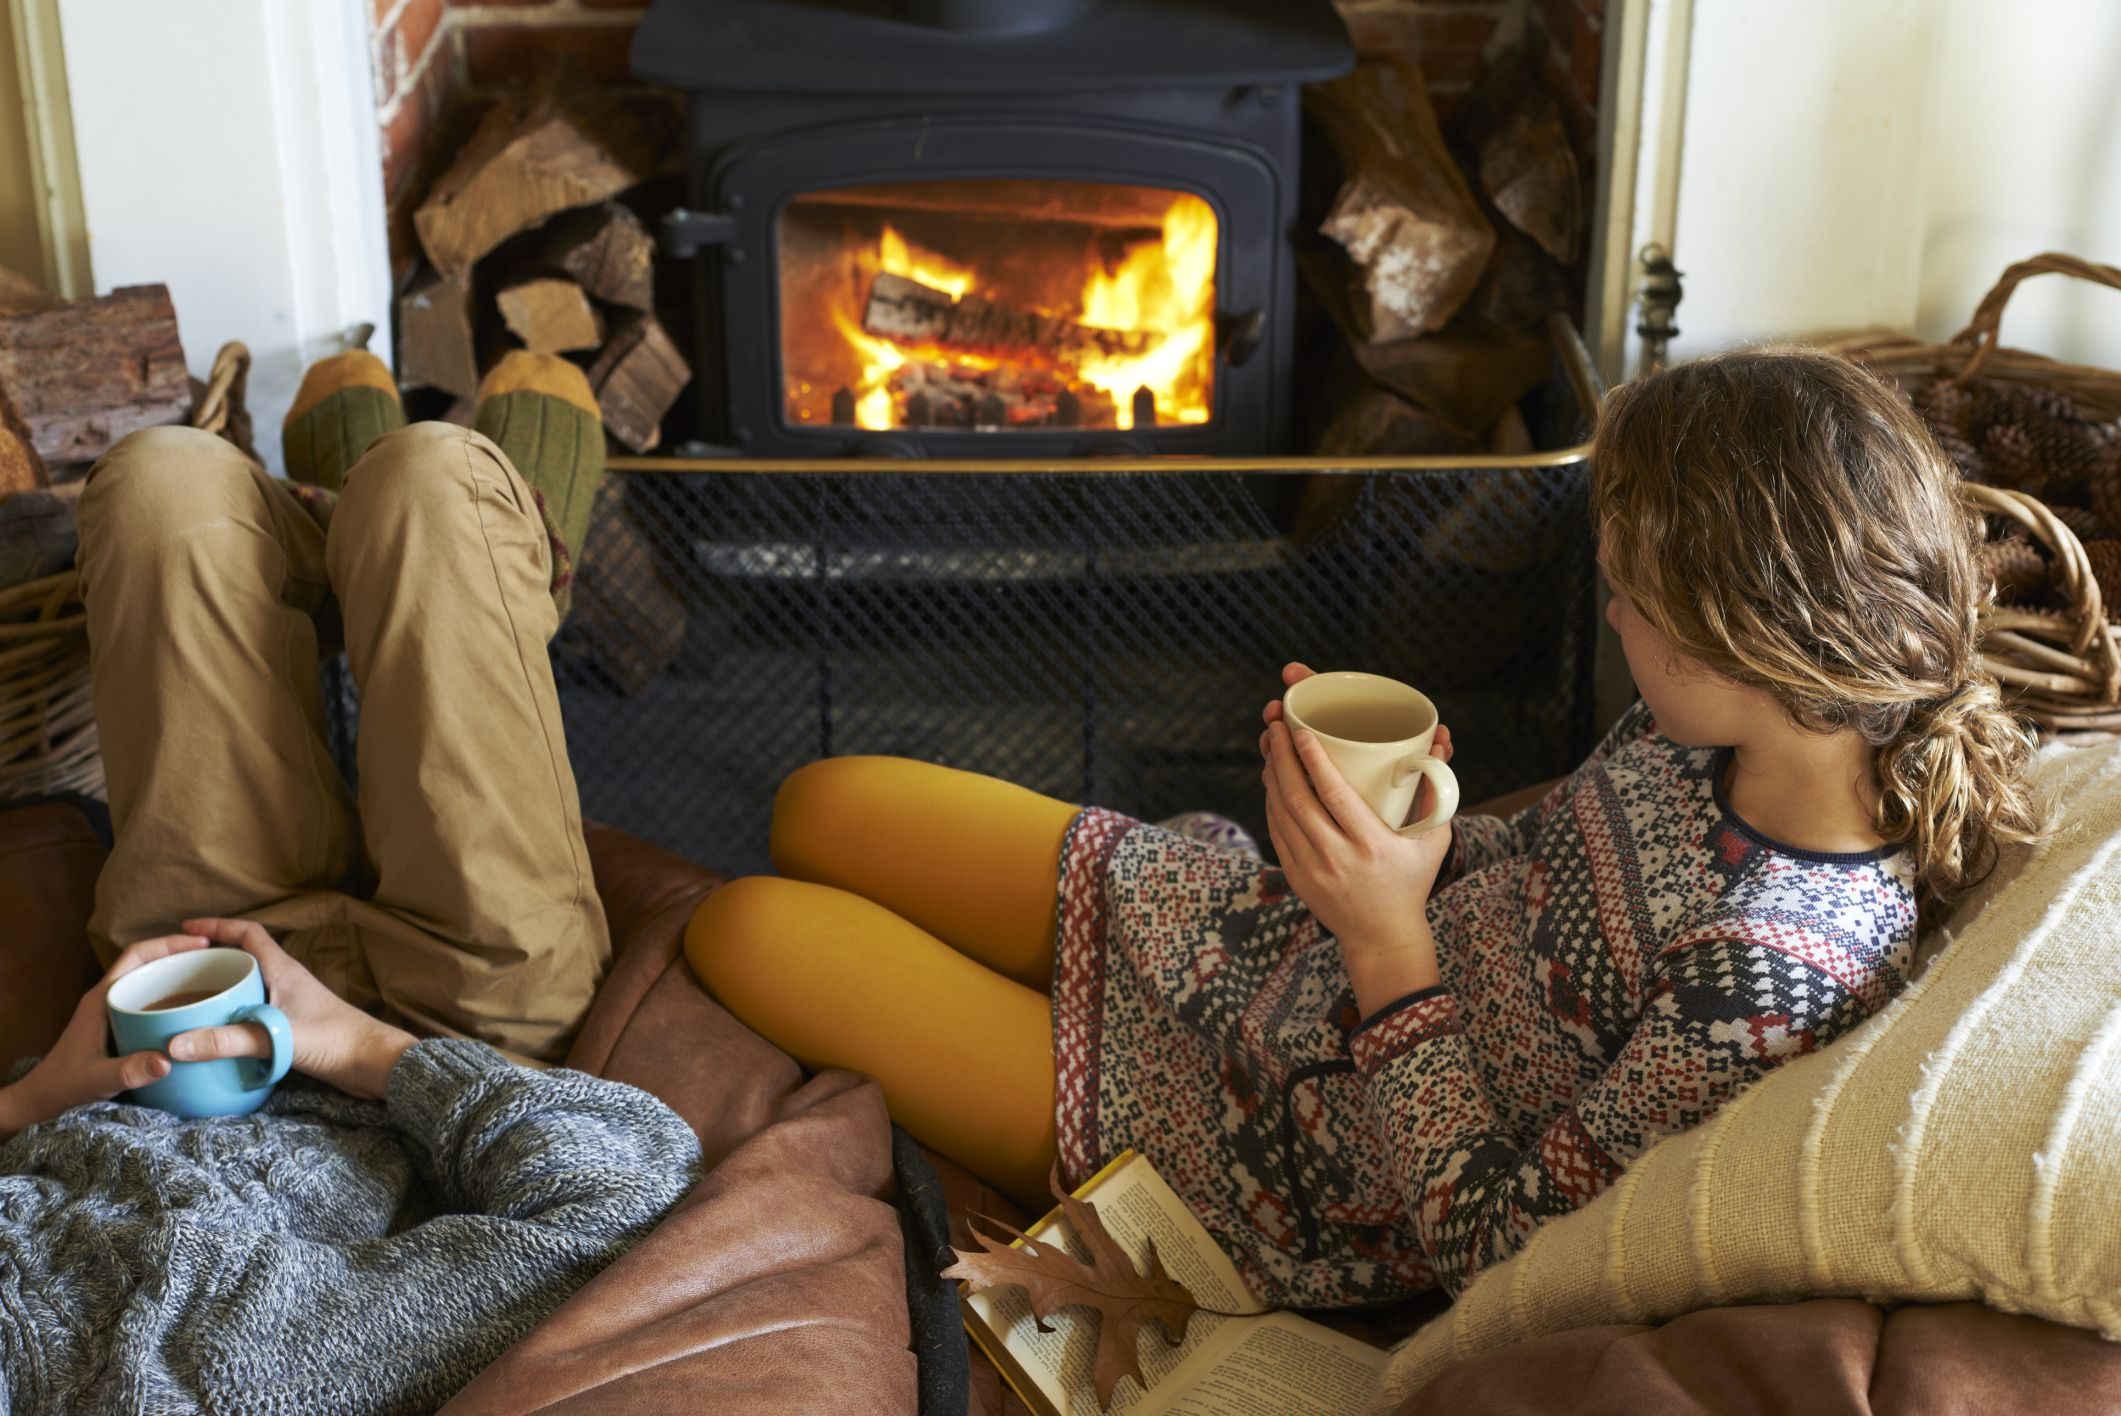 ways to keep warm without turning up the heat